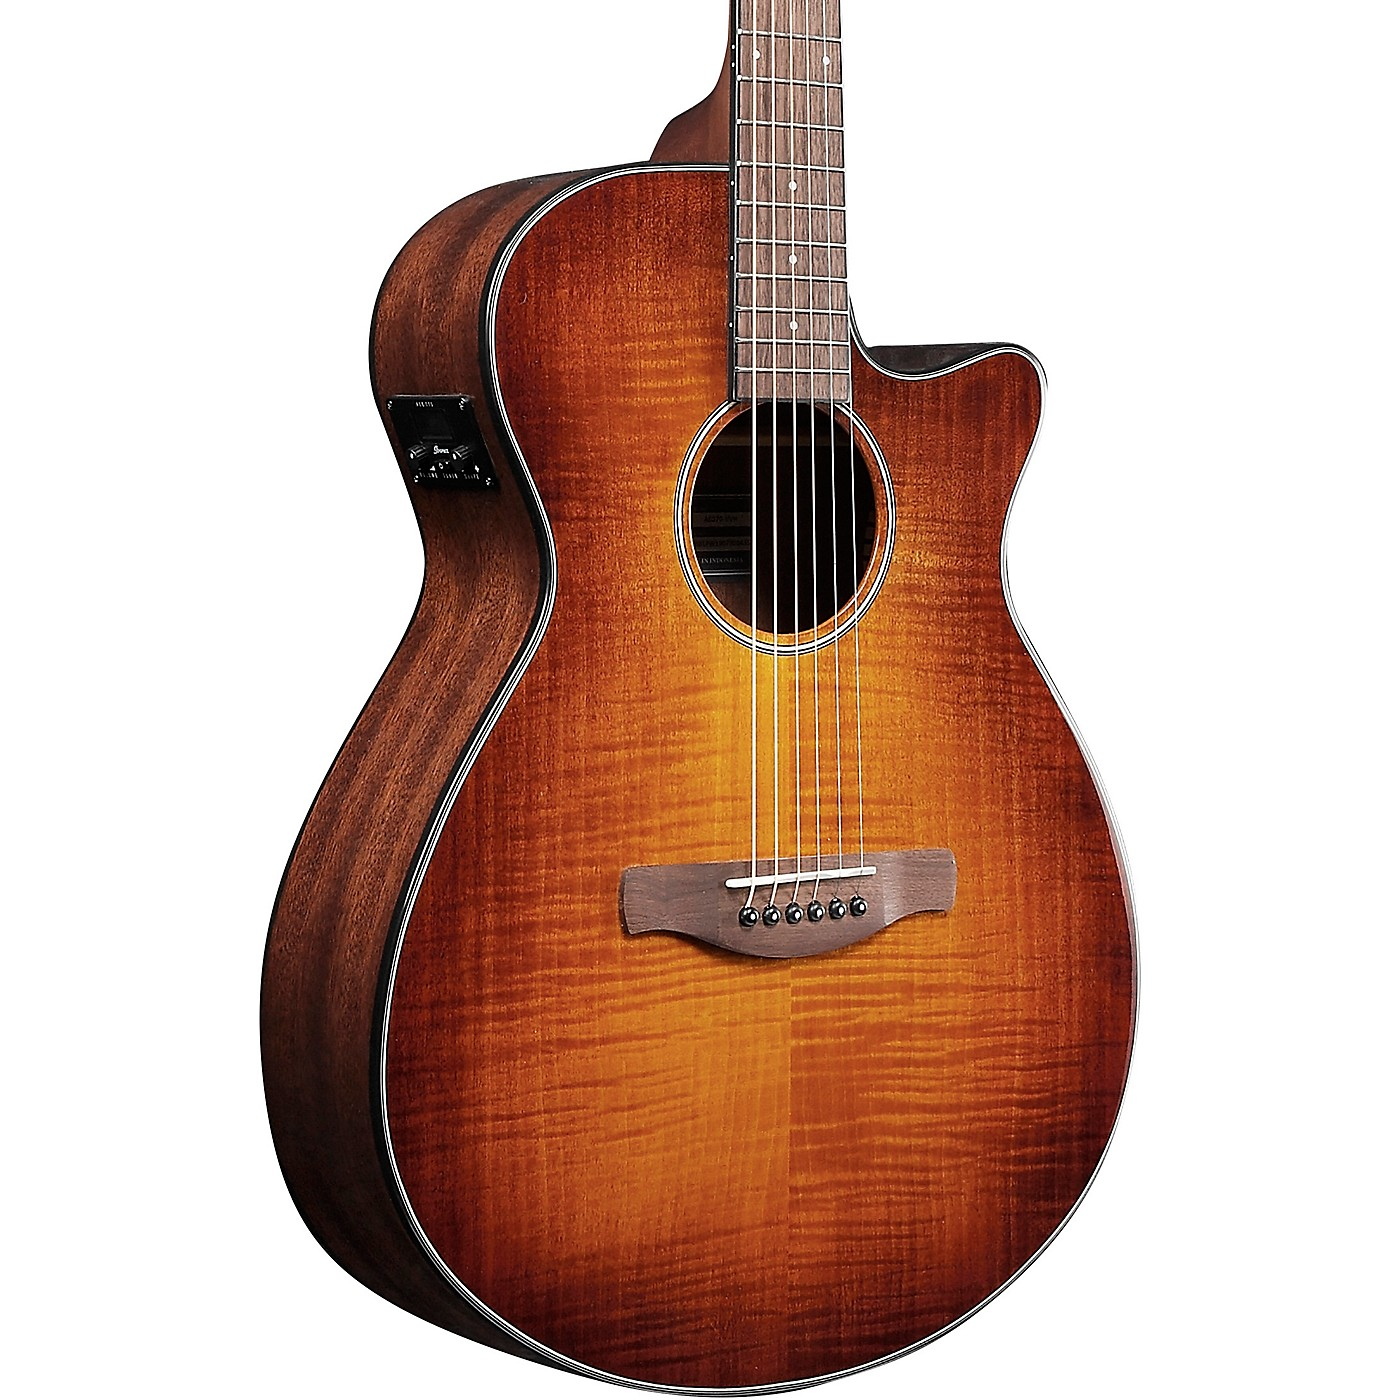 Ibanez AEG70 Flamed Maple Top Grand Concert Acoustic-Electric Guitar thumbnail